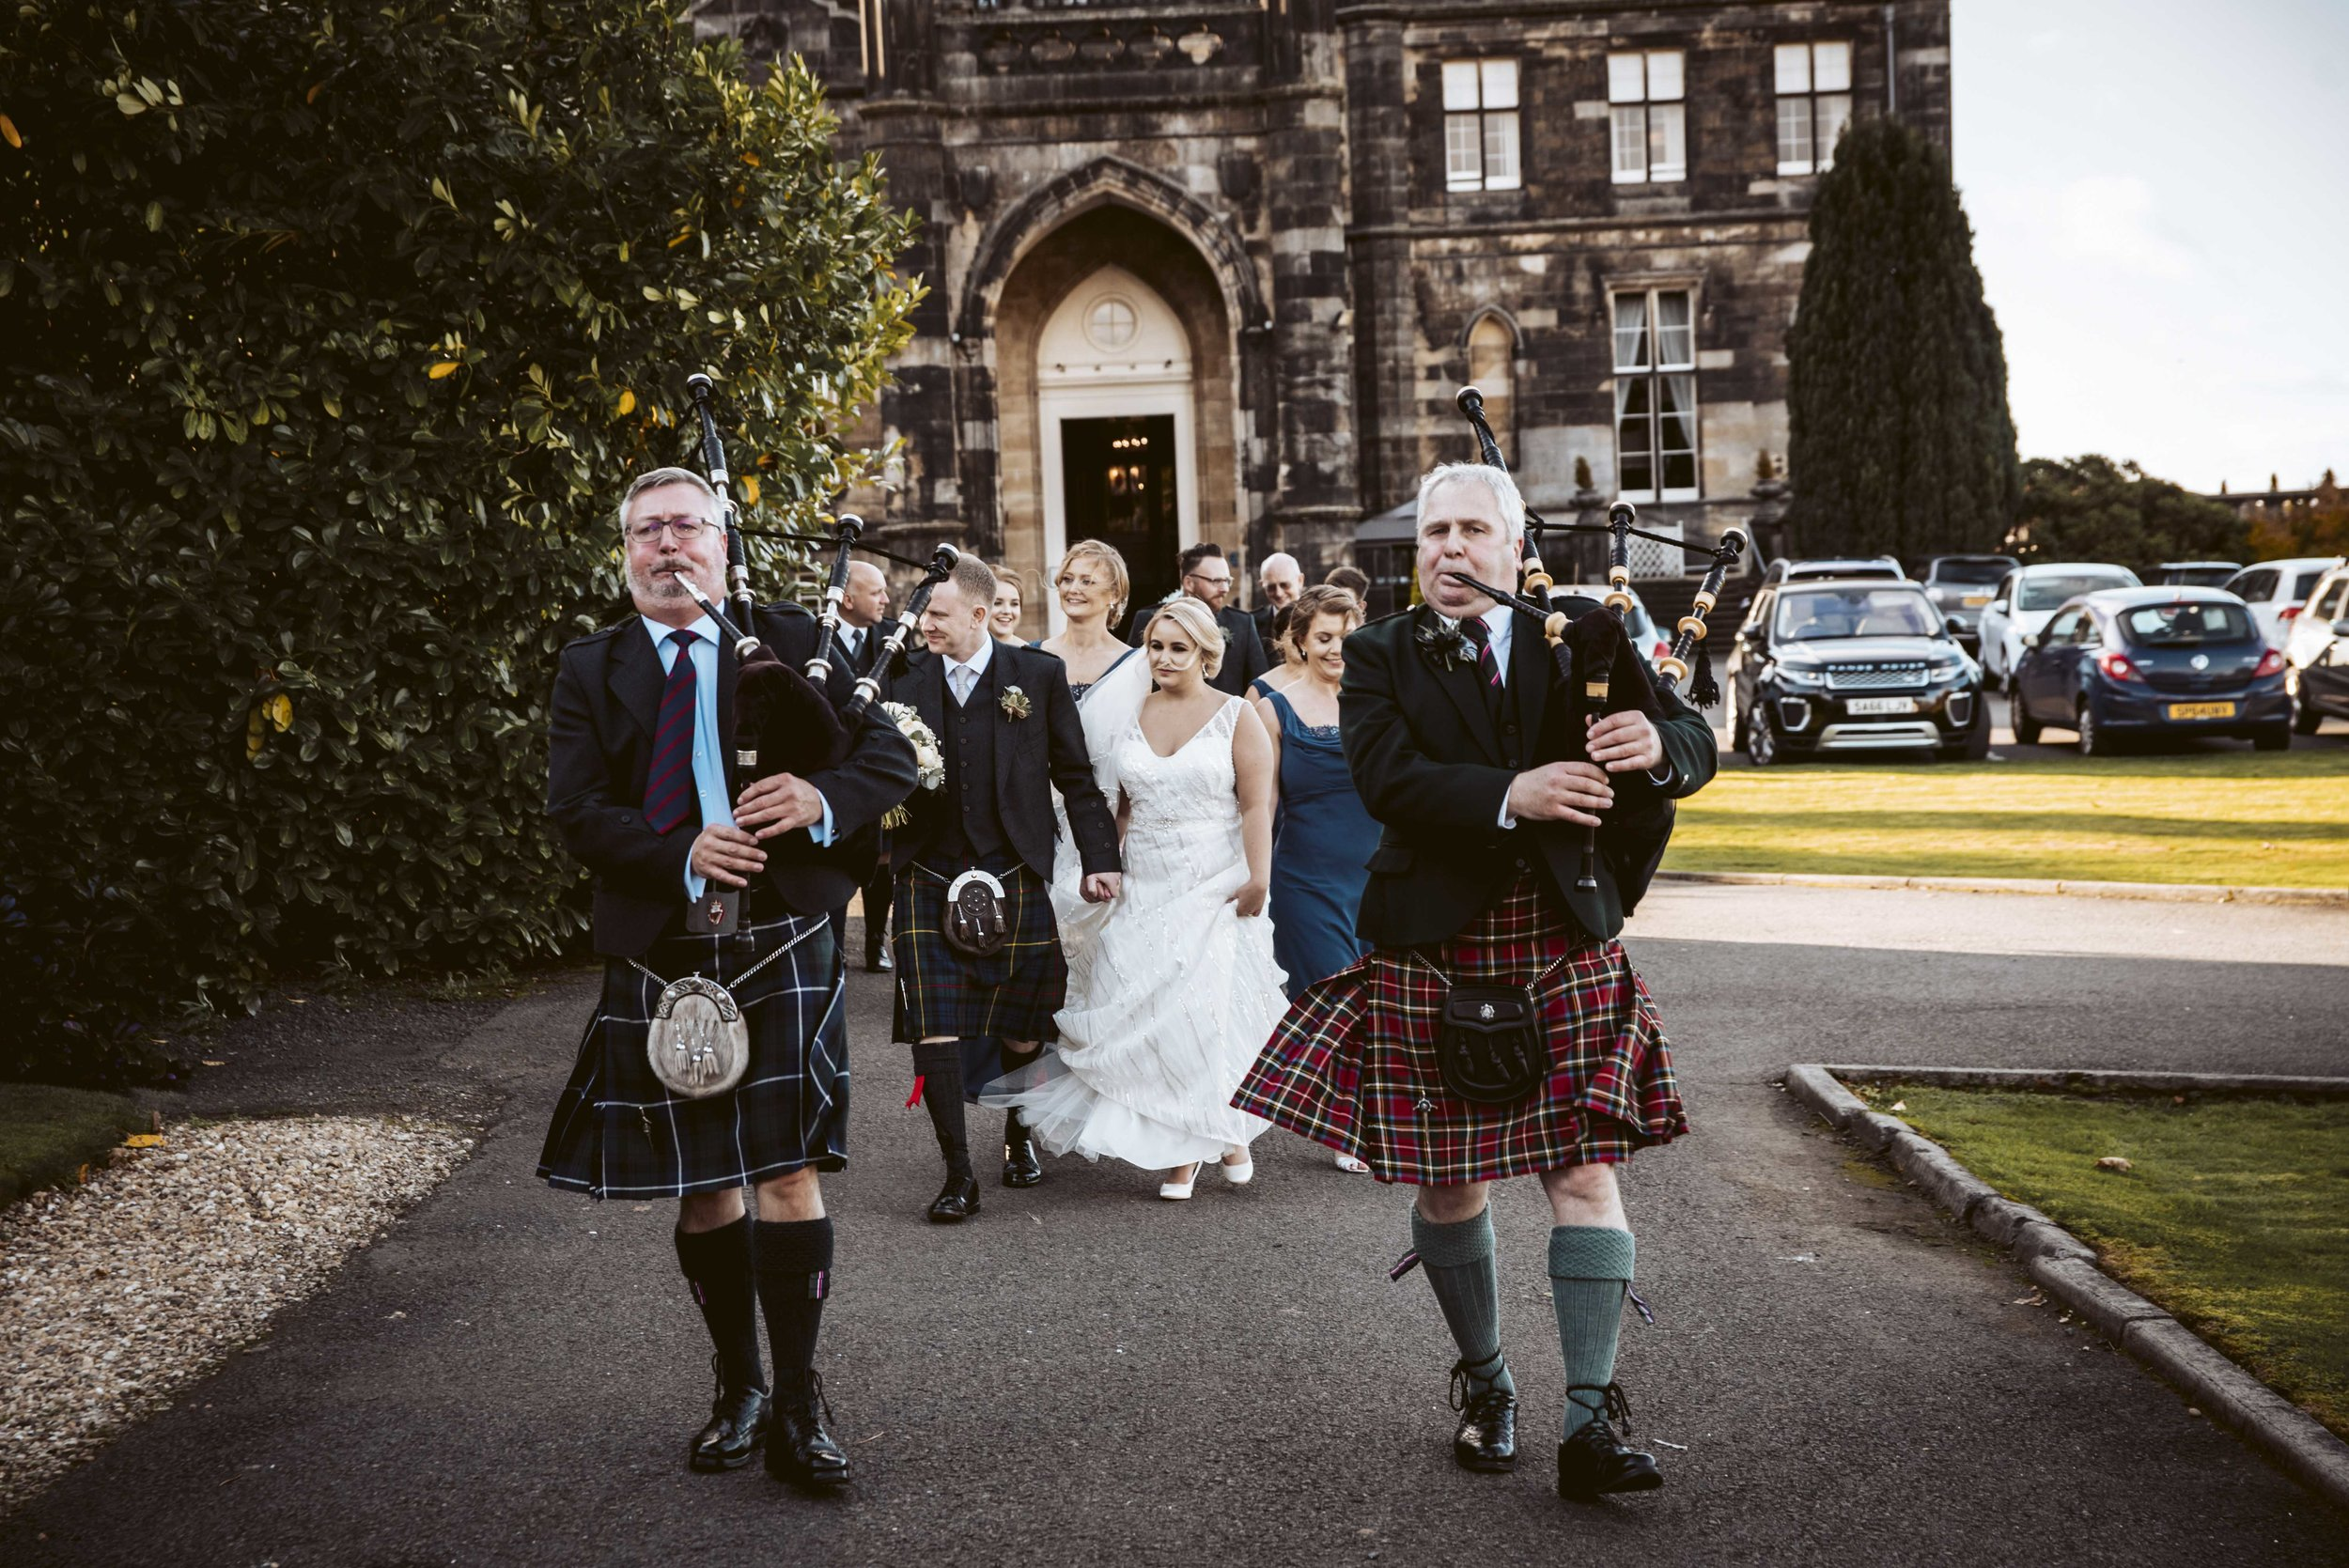 Mar Hall Wedding 2018, Haminsh & Emma McEwan 49.JPG